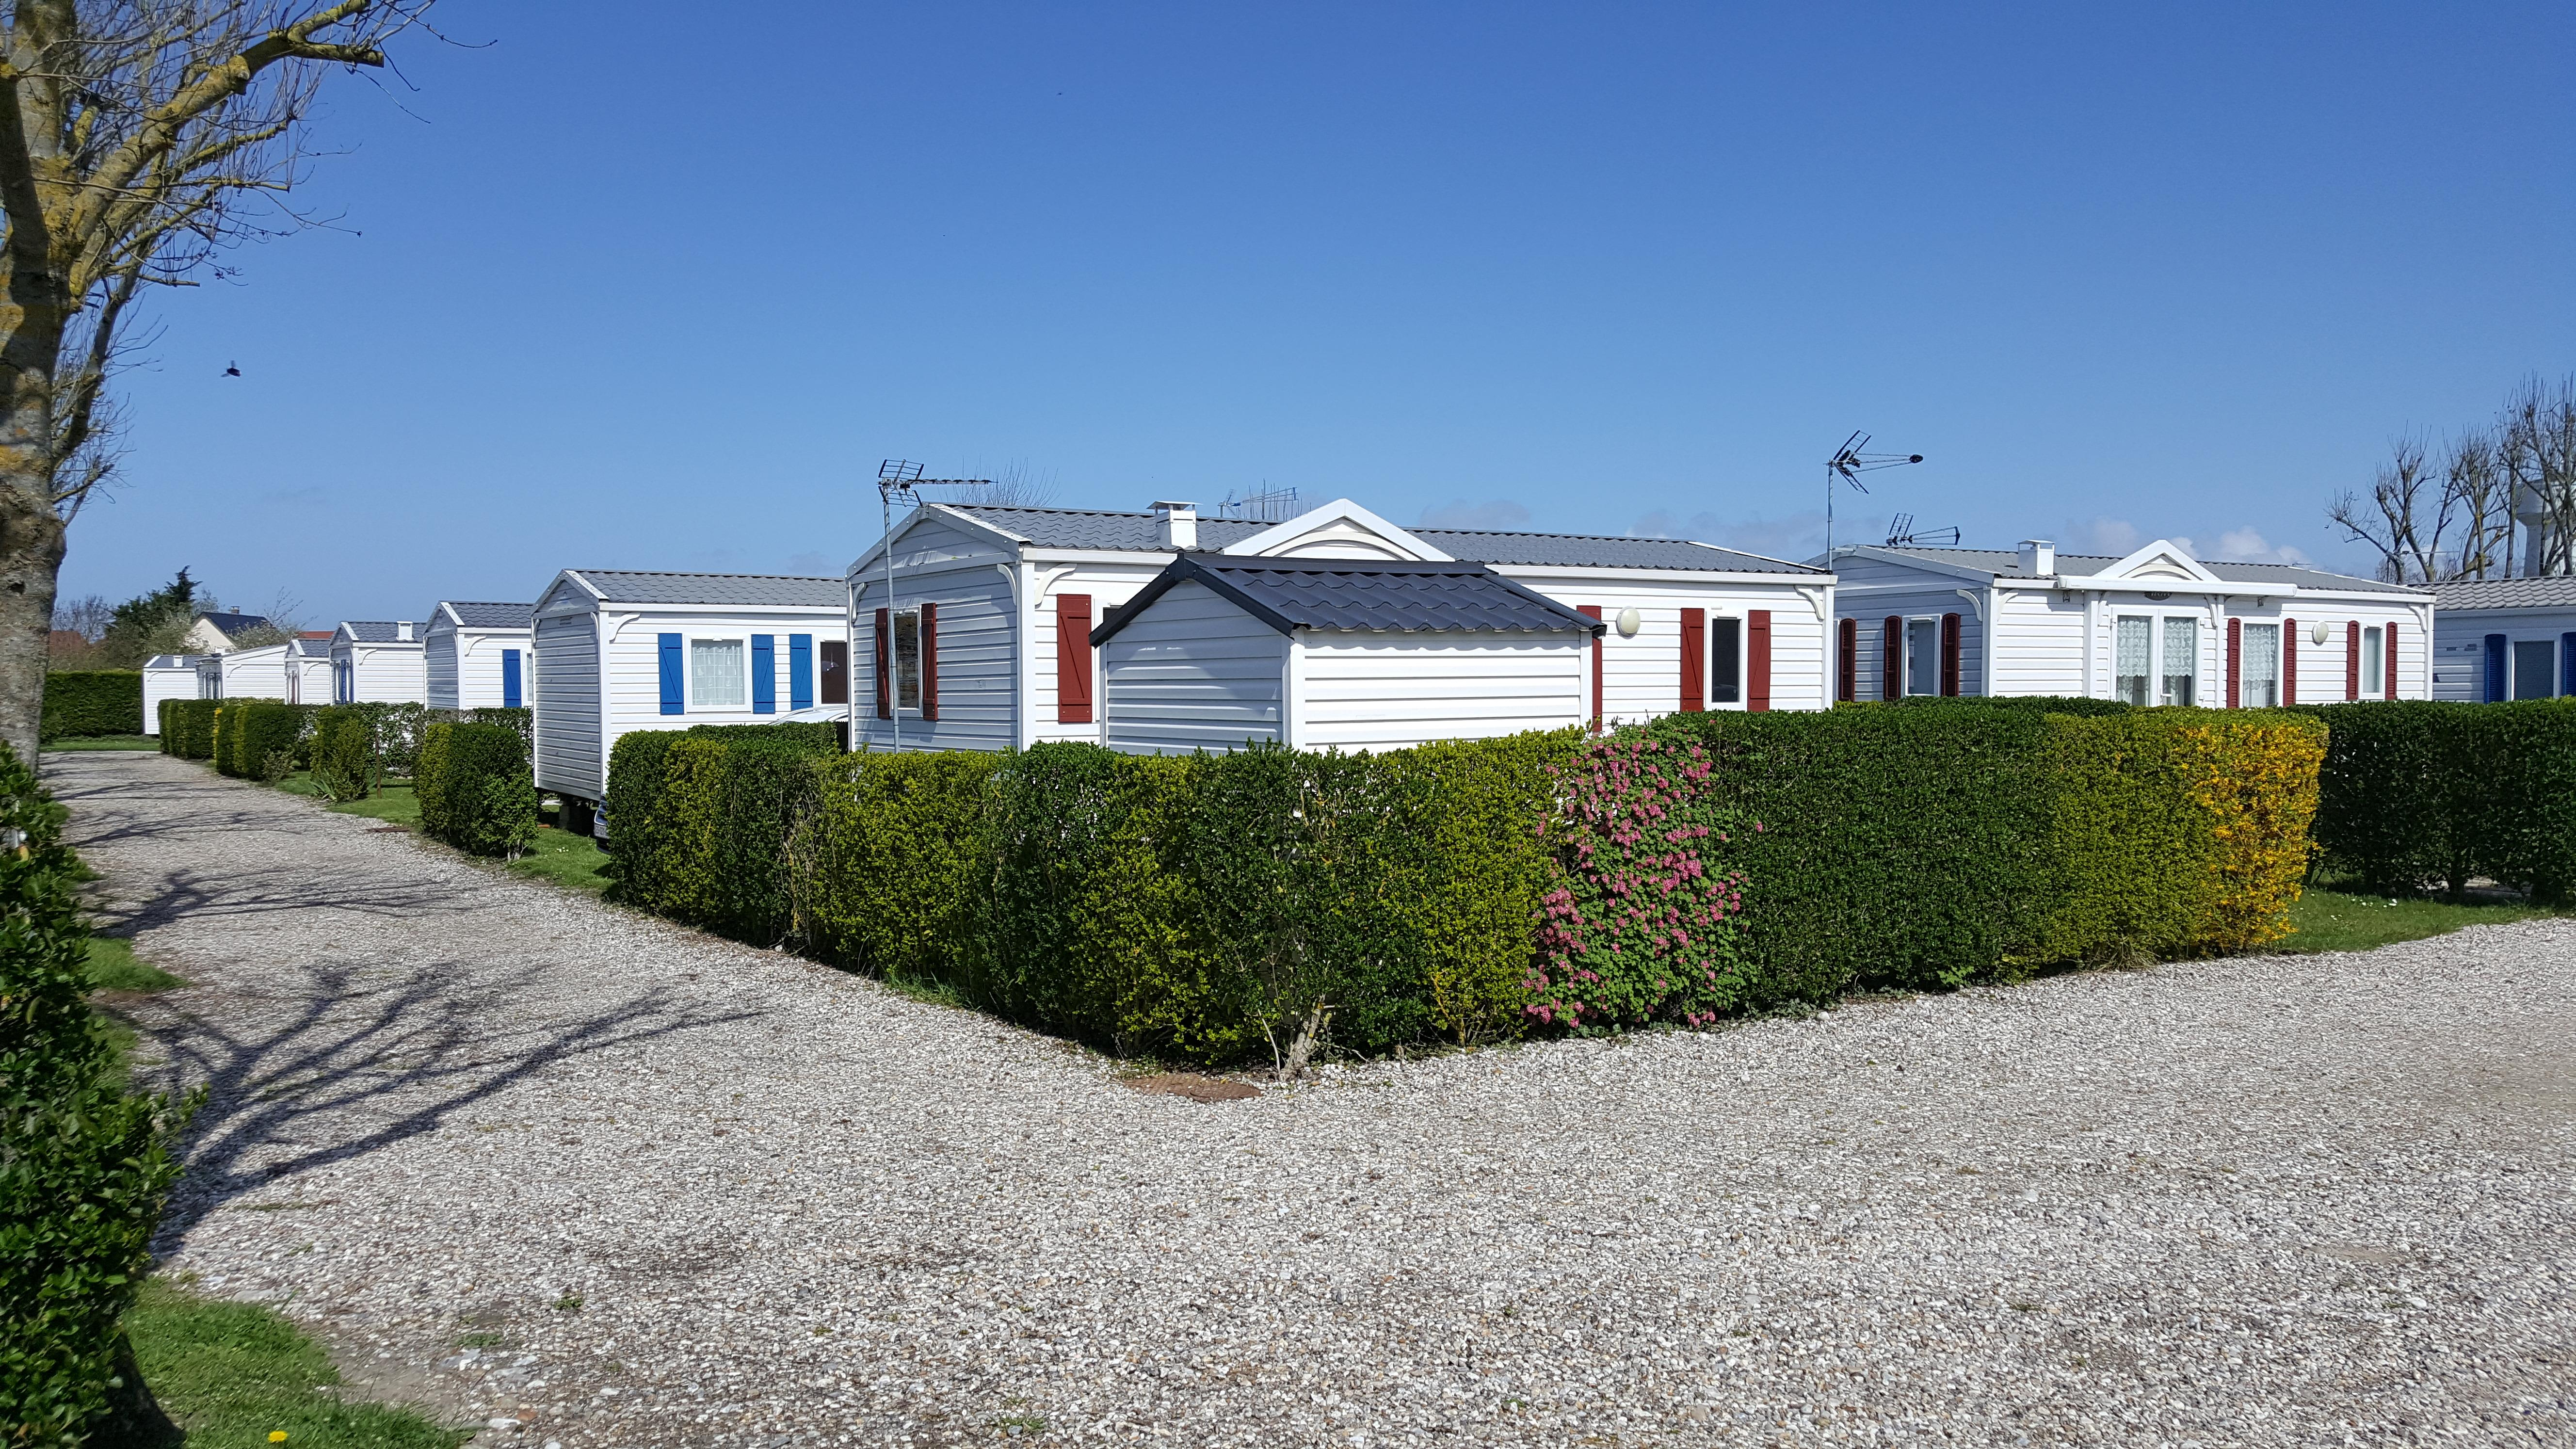 Camping le Pre Fleuri, Le Crotoy, Somme